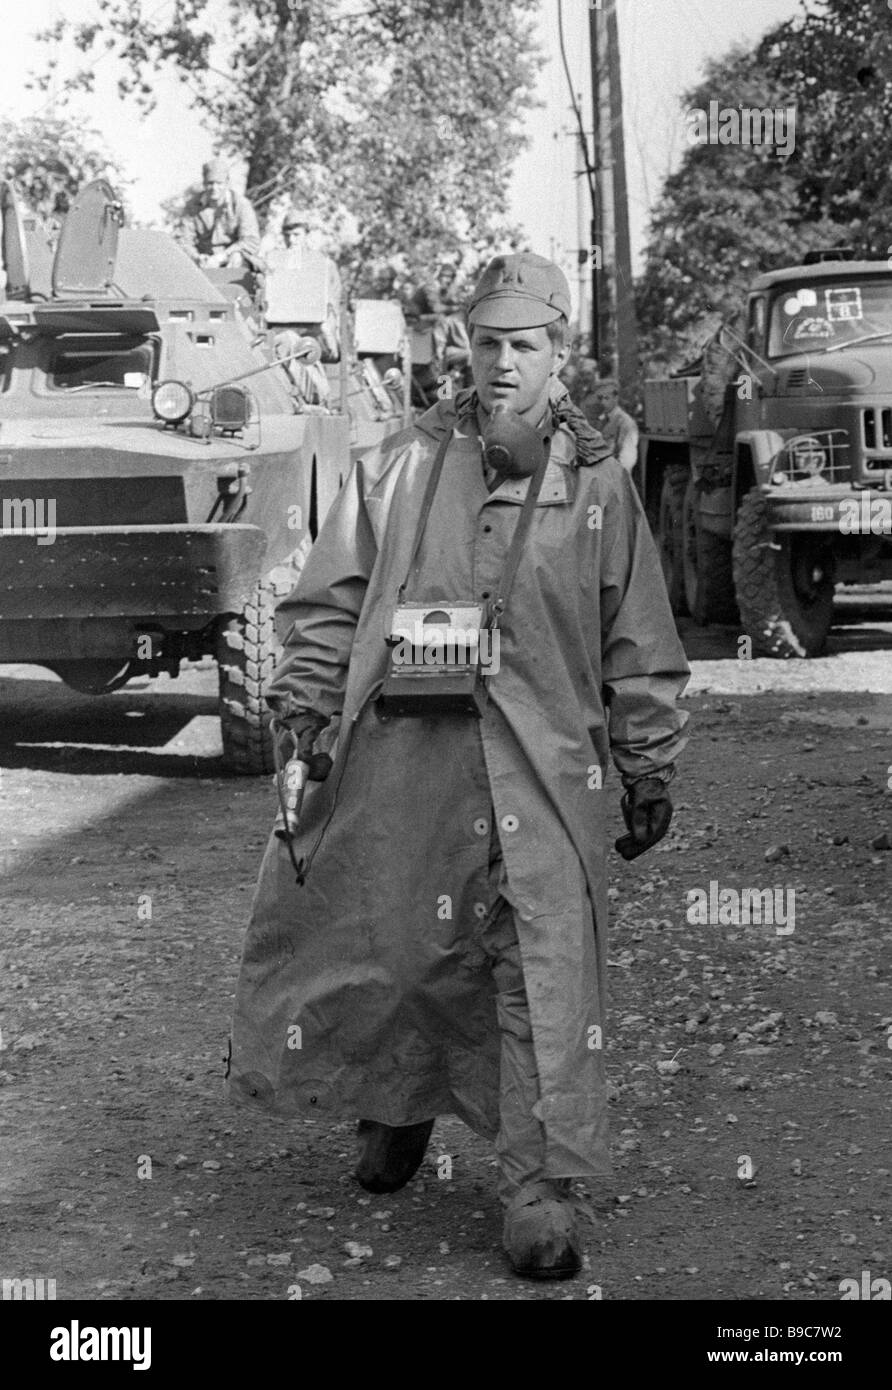 A soldier of the USSR s armed forces assigned to decon operations at the site of the disaster in Chernobyl s 4th - Stock Image